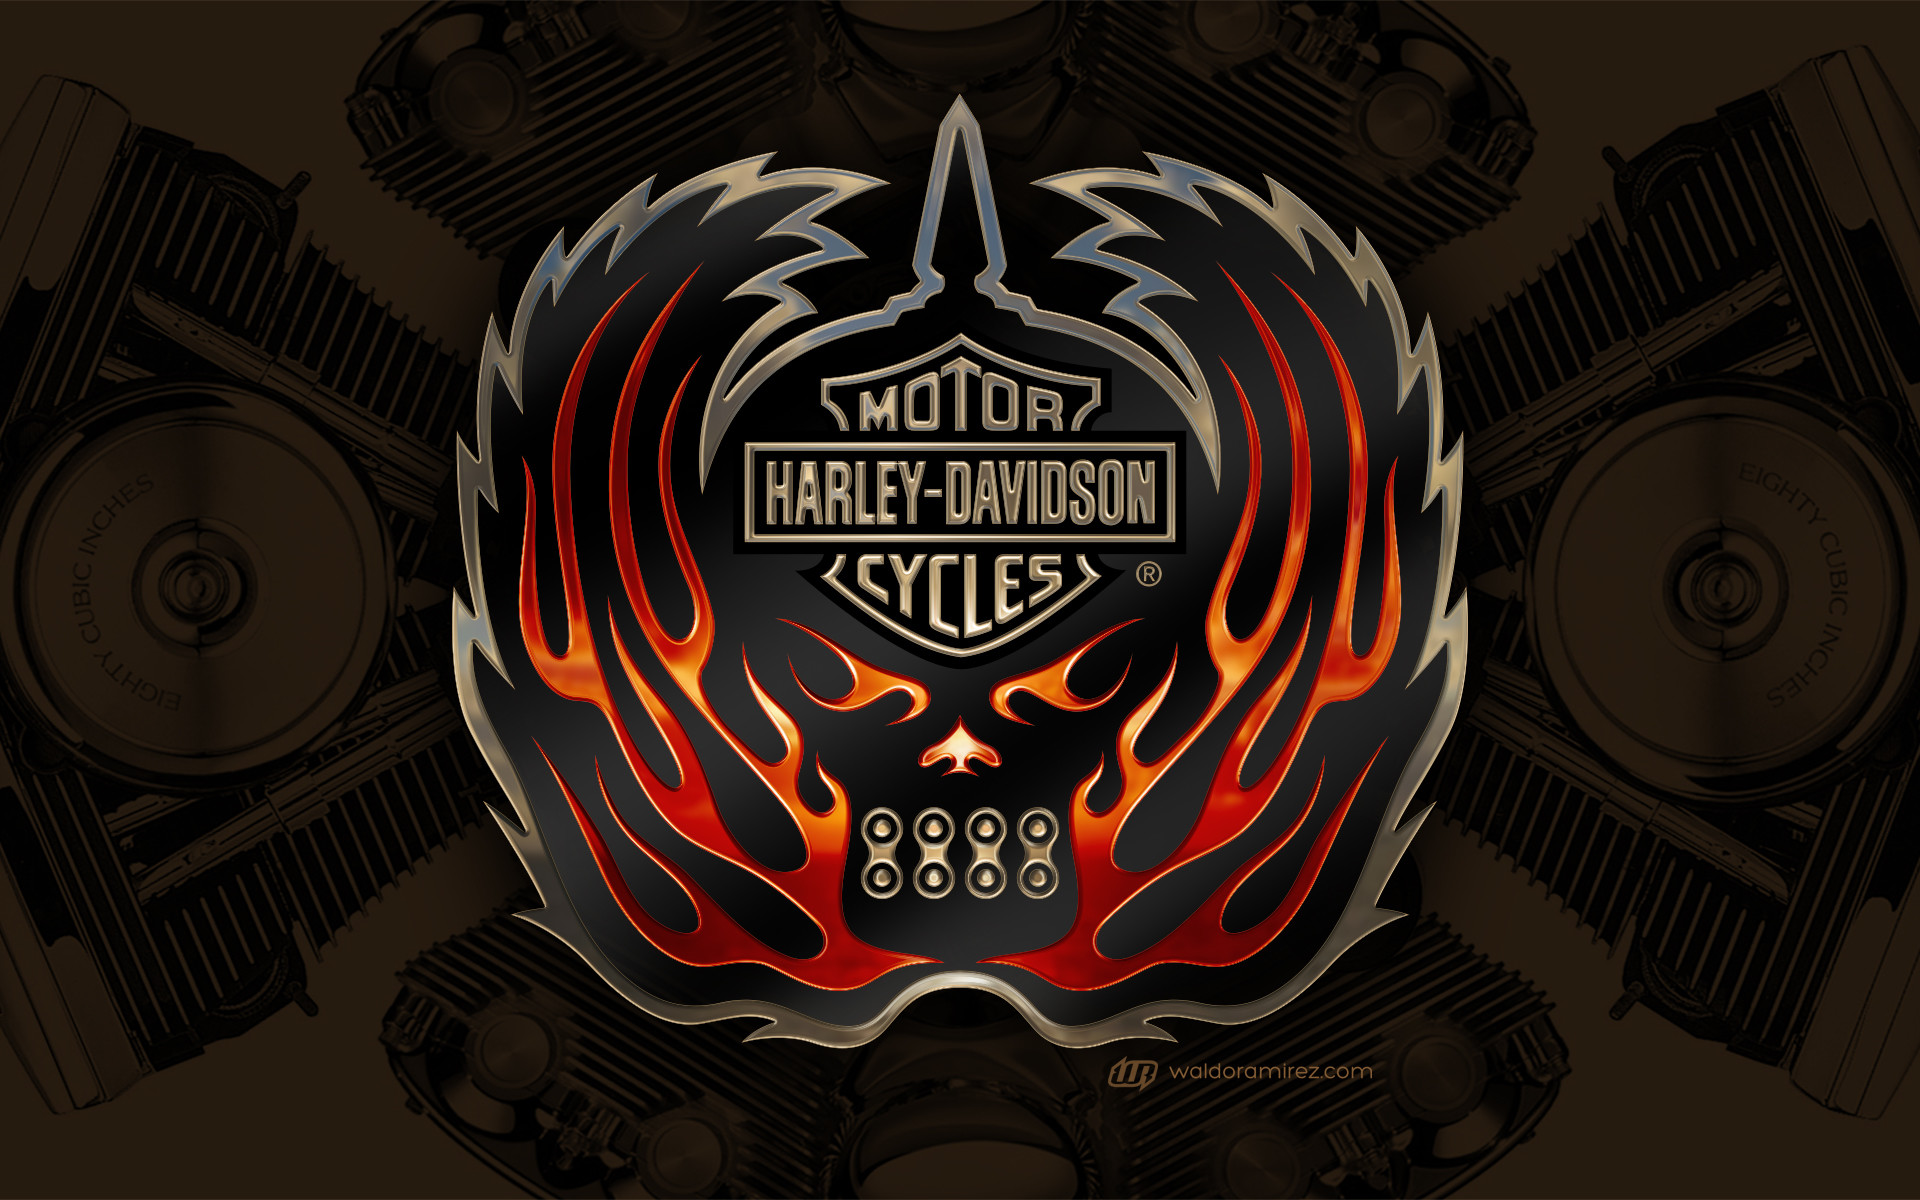 1920x1200 Here are some screensavers for any Harley Davidson fans out there